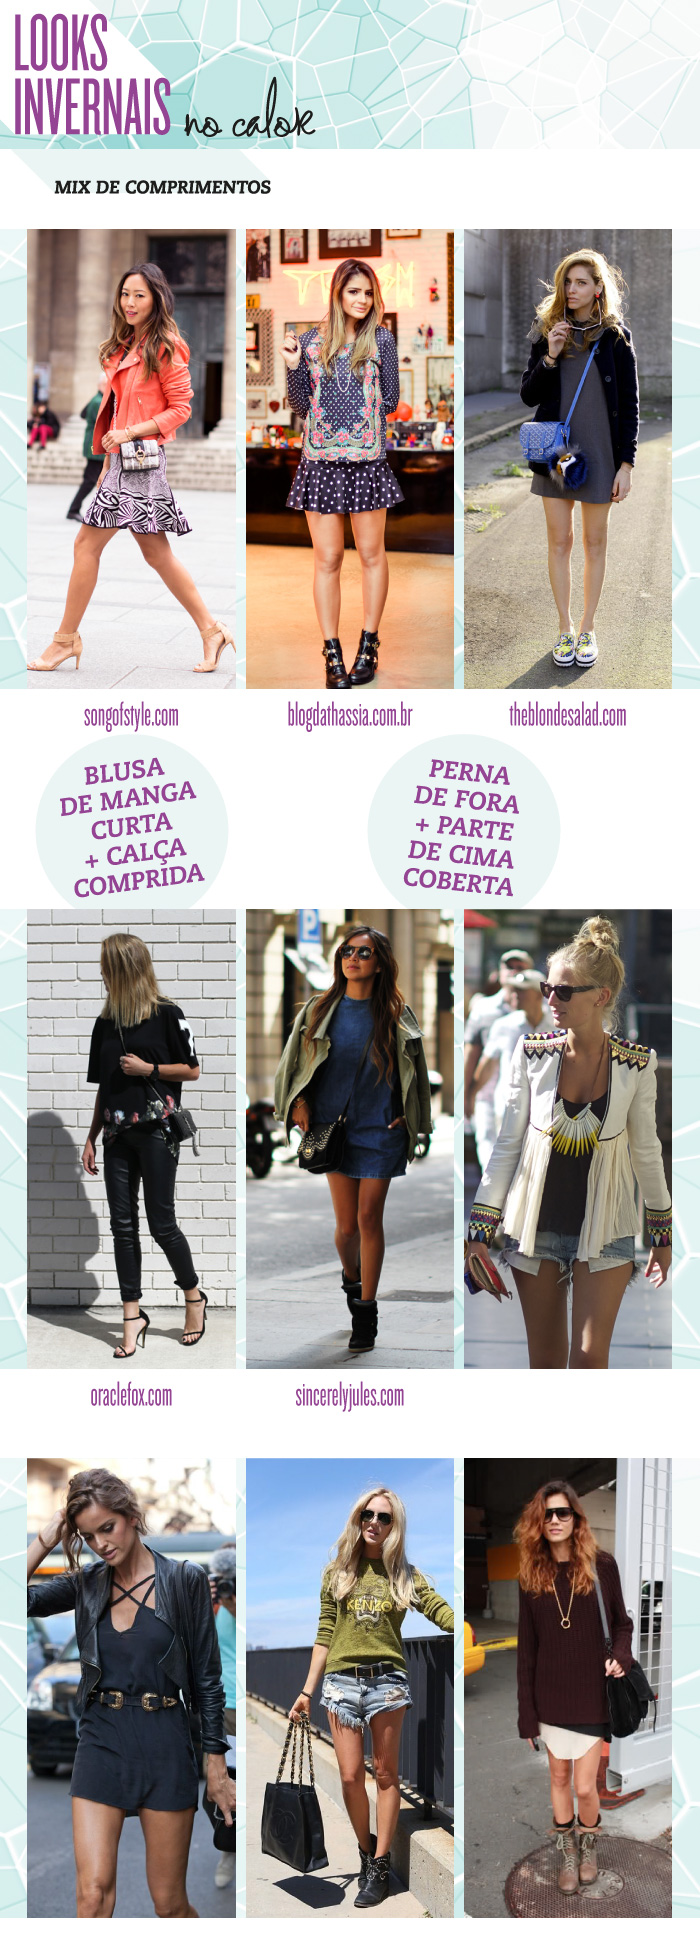 03-10-looks-invernais-no-calor_01_mix-de-comprimentos